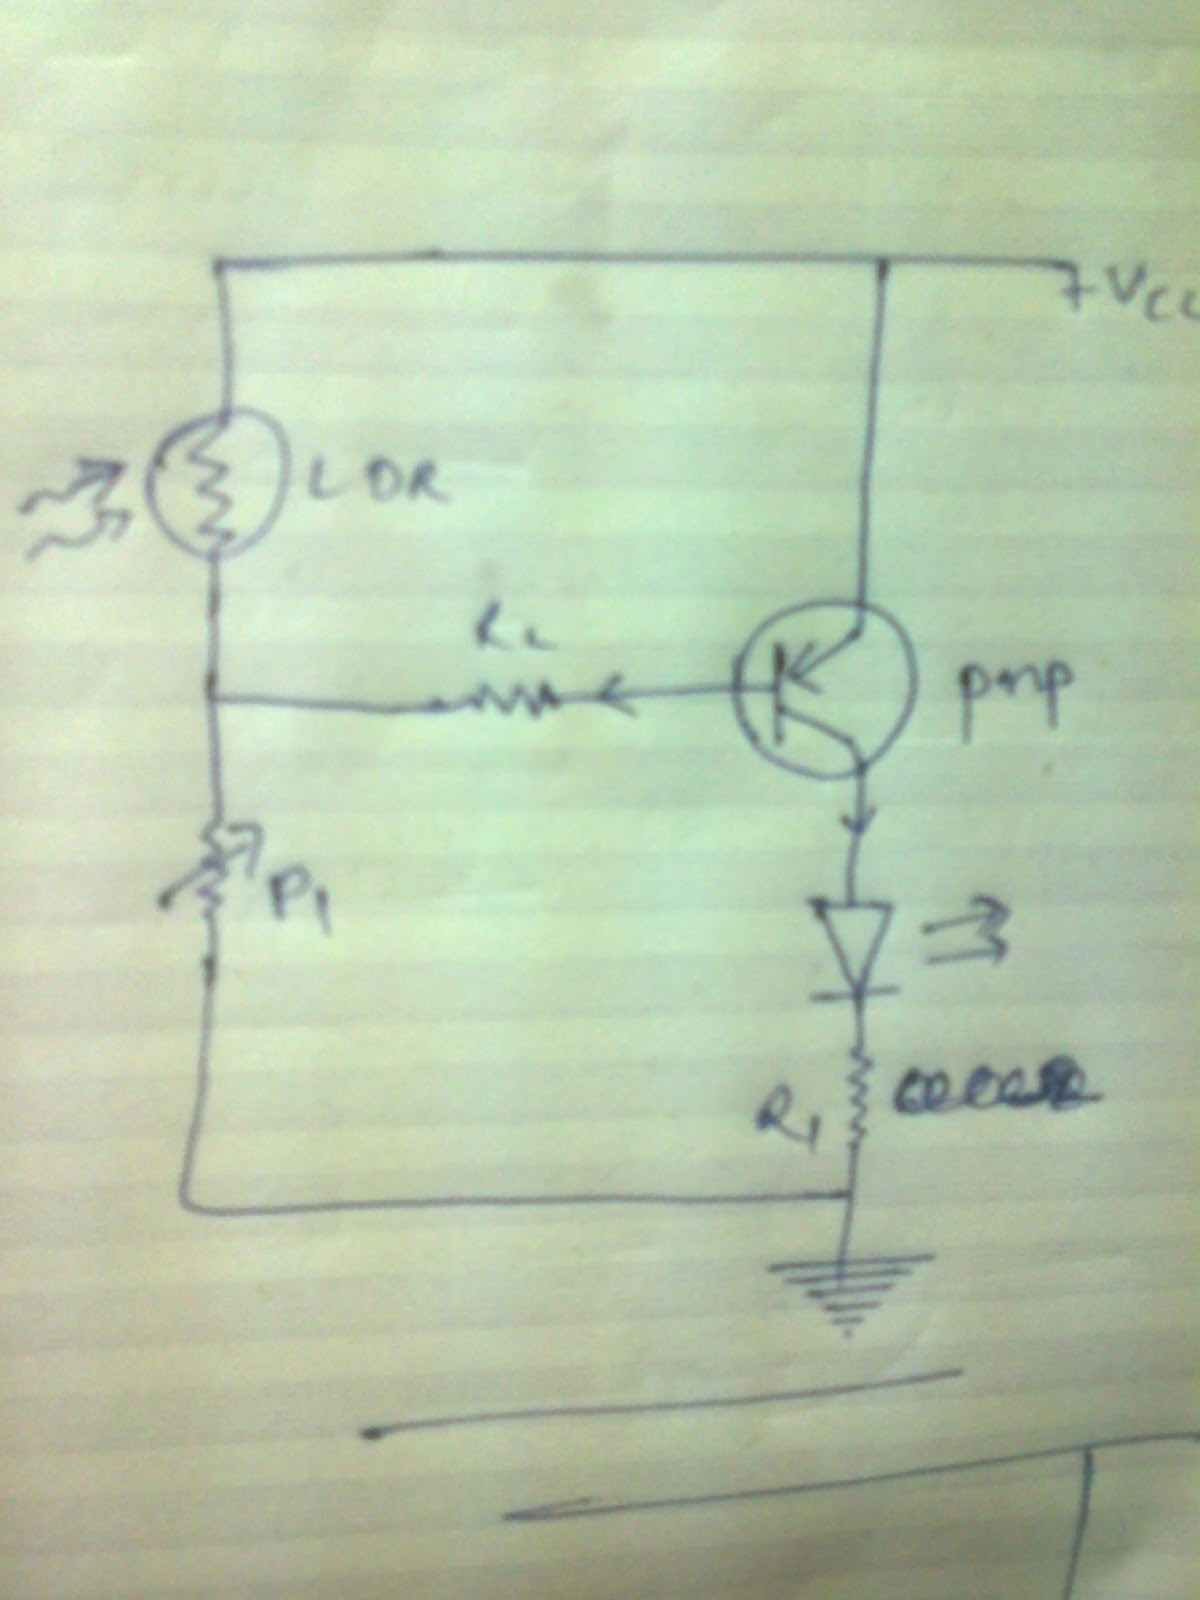 Automatic Night Lamp Using Pnp Transistorand Ldr Electronic Projects Circuit Diagram